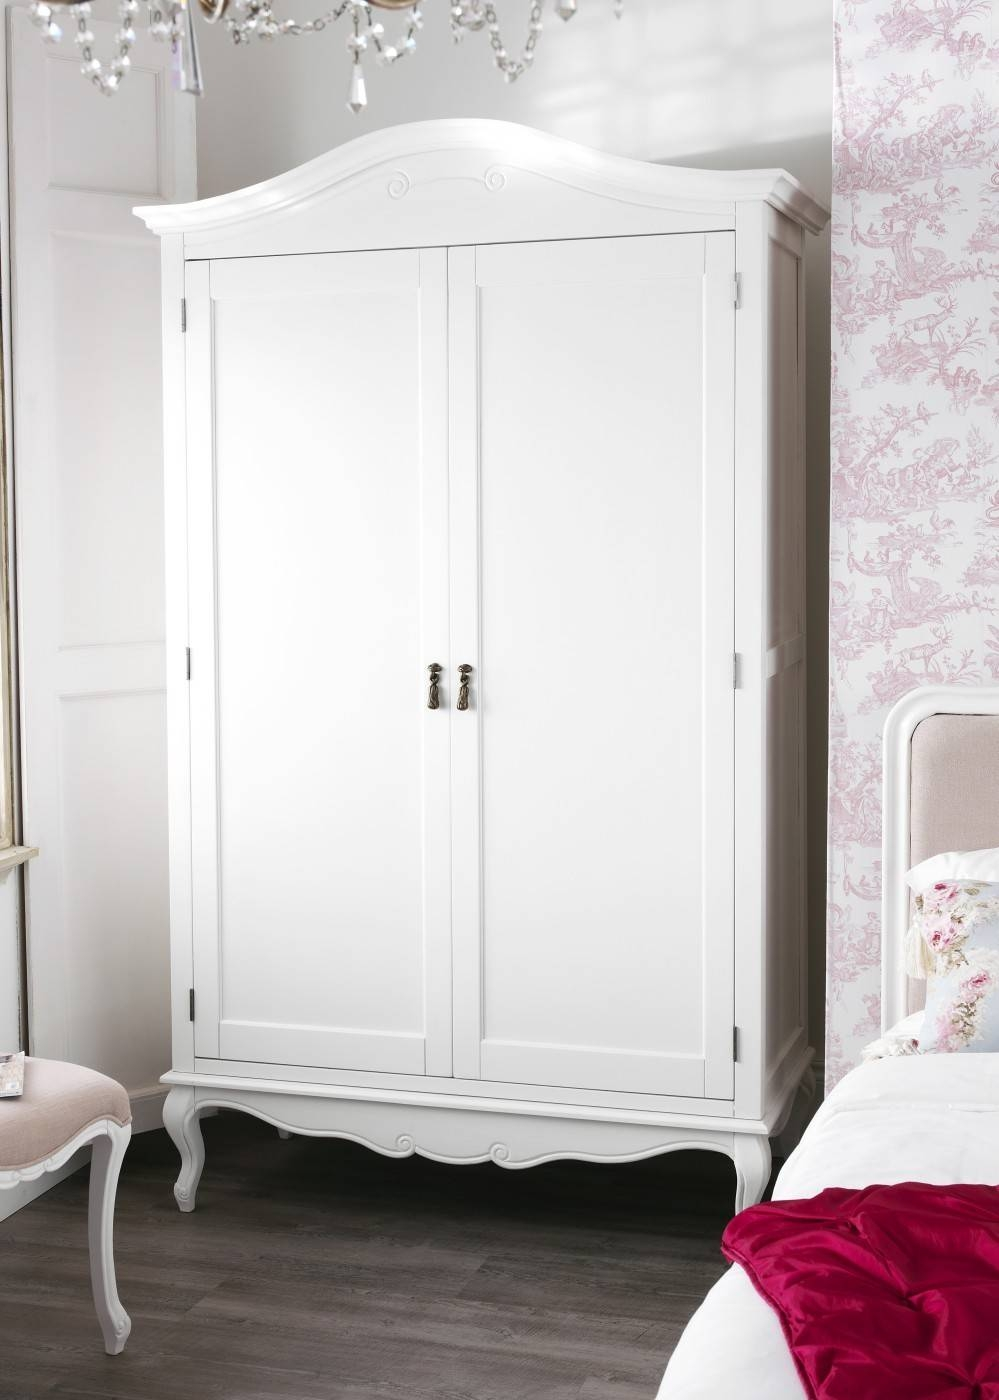 Wardrobes | Bedroom Furniture Direct within Double Rail White Wardrobes (Image 15 of 21)